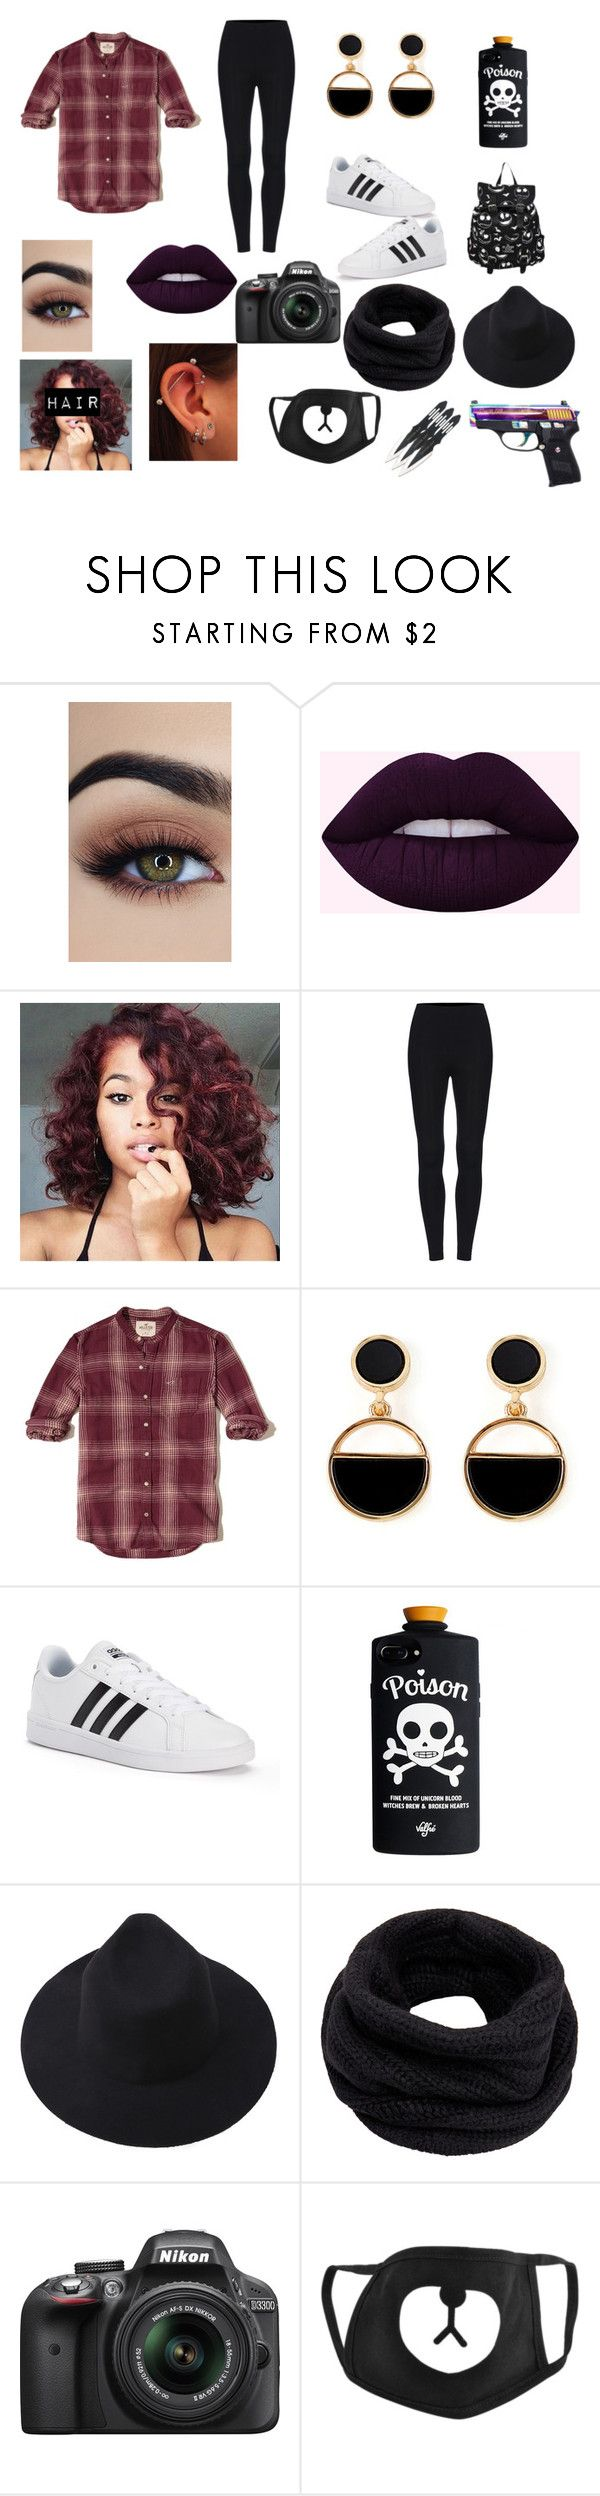 """""""Untitled #49"""" by diamondlove1223 on Polyvore featuring Hollister Co., Warehouse, adidas, Helmut Lang, Victoria's Secret, Nikon, men's fashion and menswear"""